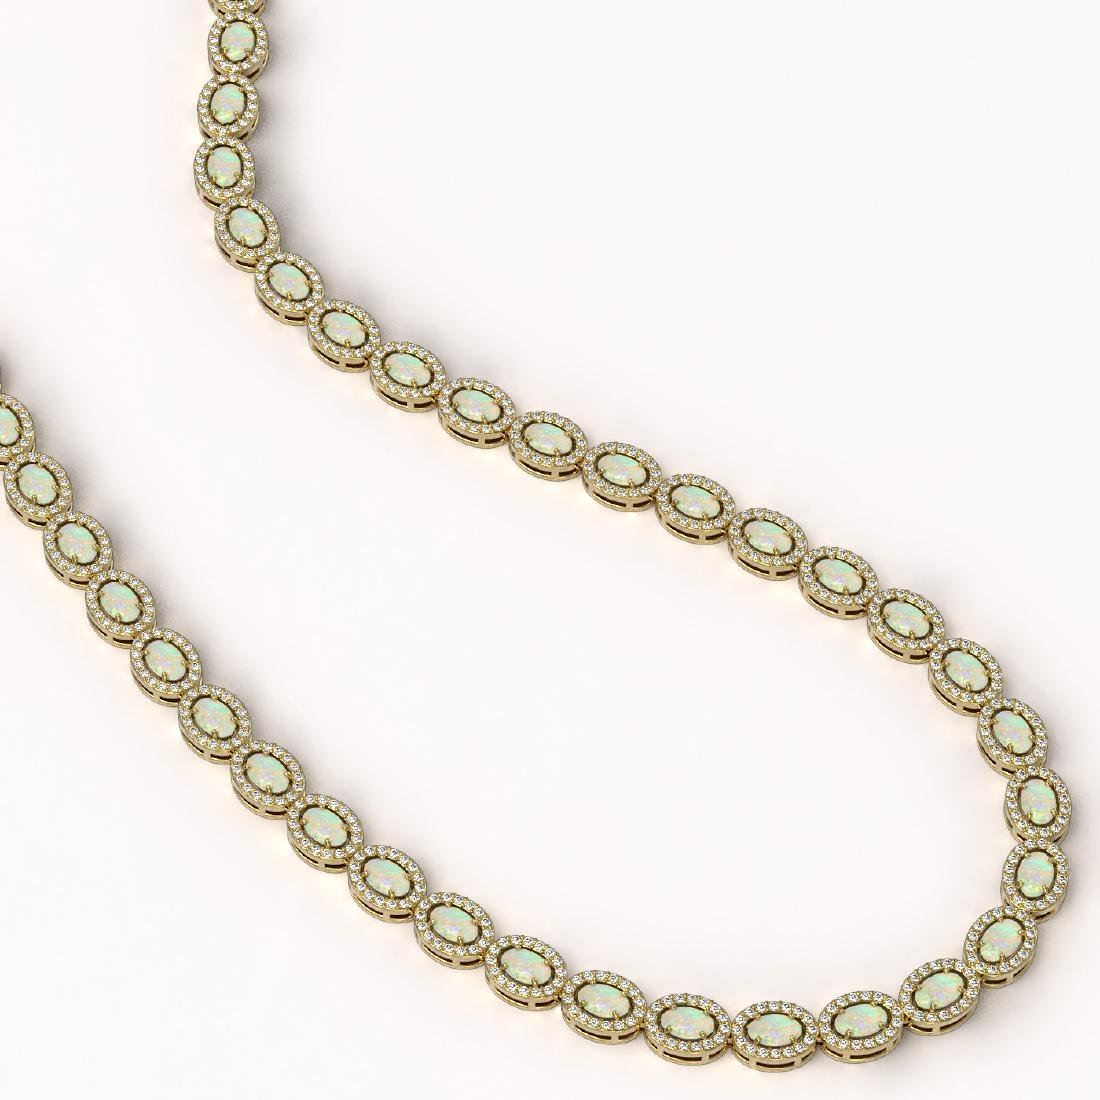 20.22 CTW Opal & Diamond Halo Necklace 10K Yellow Gold - 2